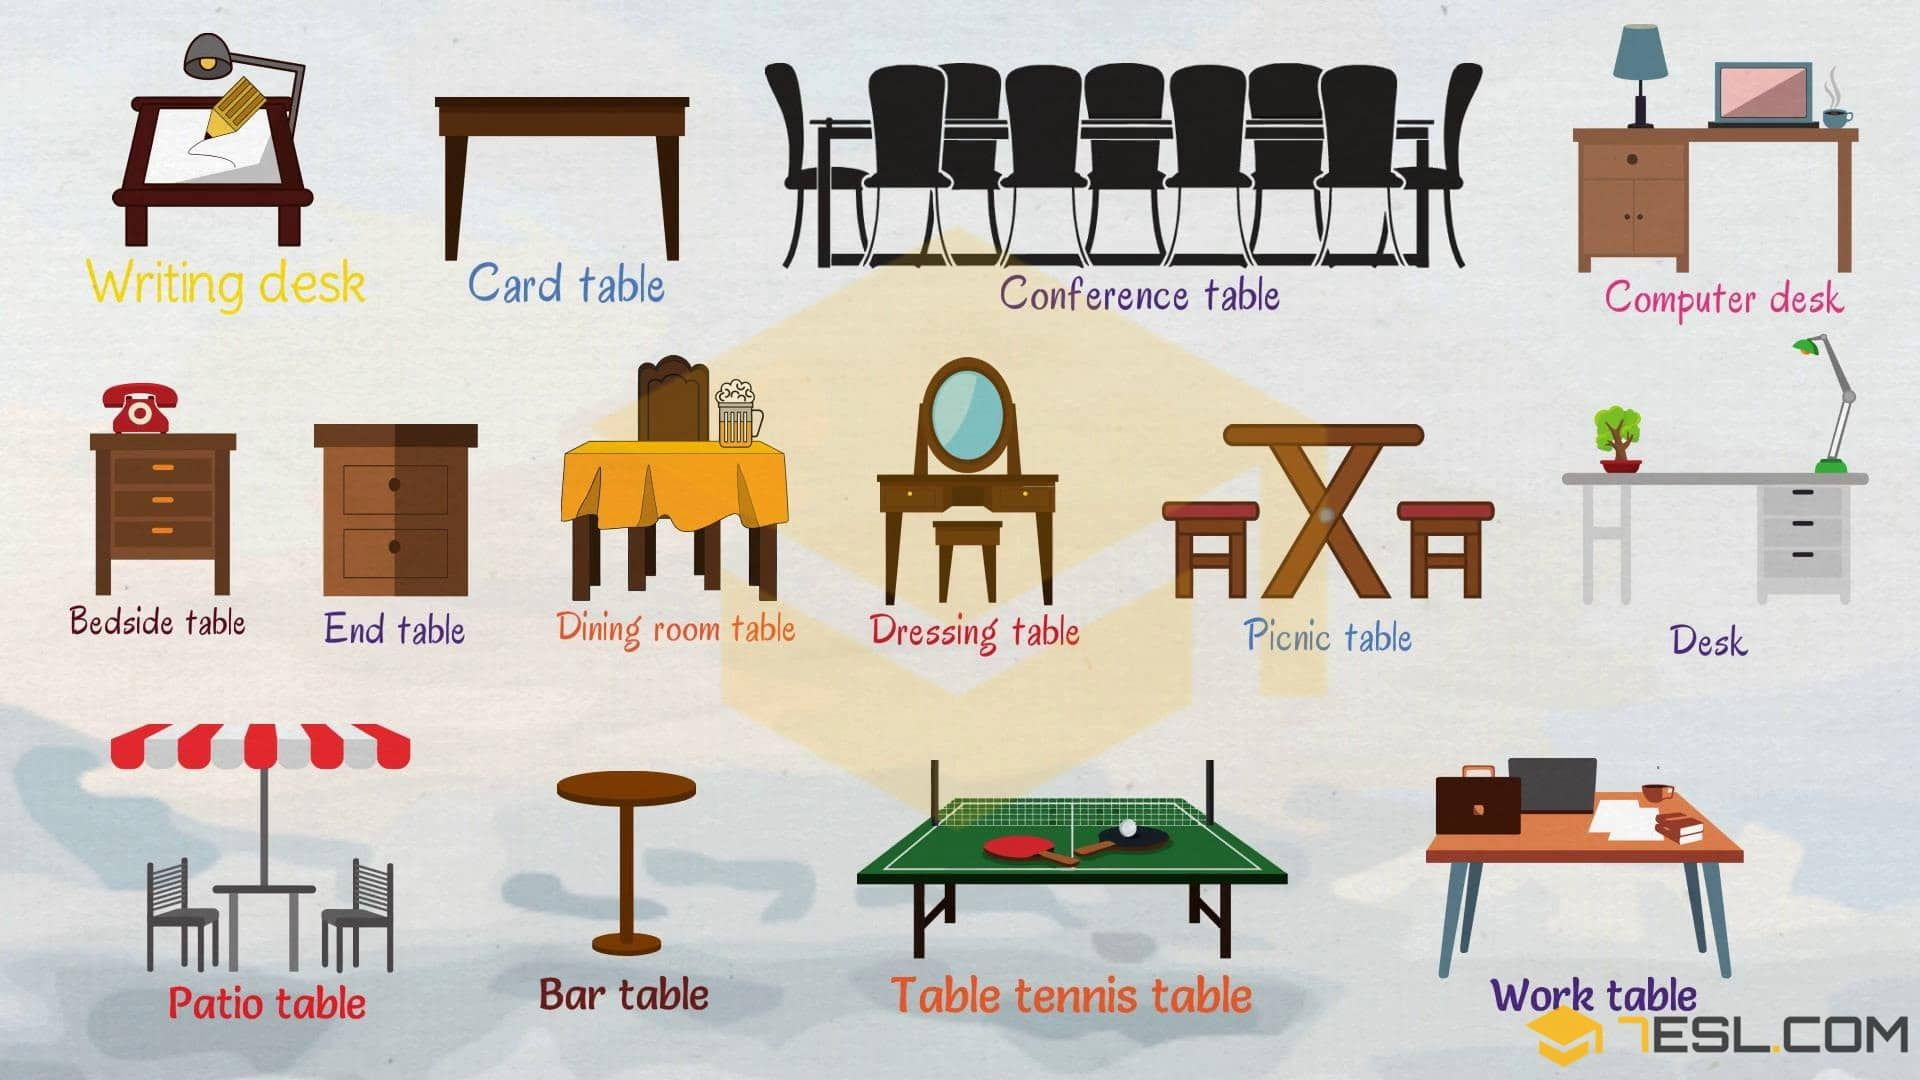 Types Of Tables List Of Tables With Pictures In English 7 E S L